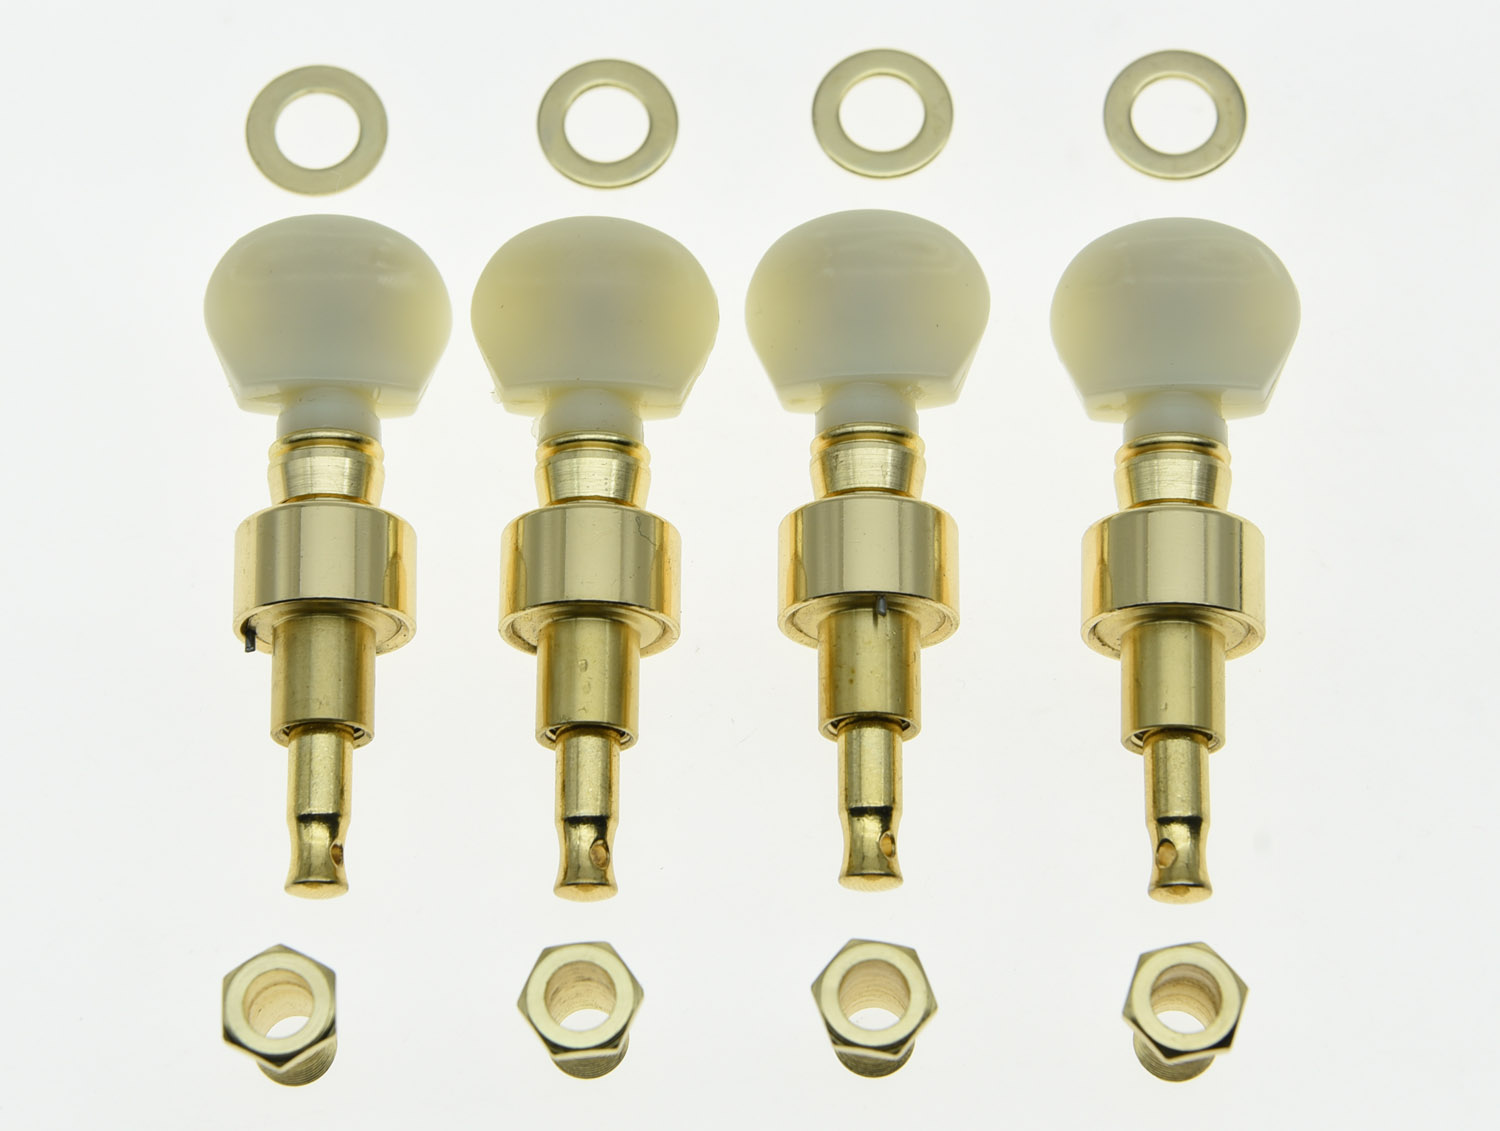 KAISH Set of 4 Gold w/ Ivory Buttons Banjo Geared Tuners Tuning Pegs Machine Heads kaish set of 4 left handed sealed bass tuners tuning keys pegs 4 string bass machine heads 2 colors